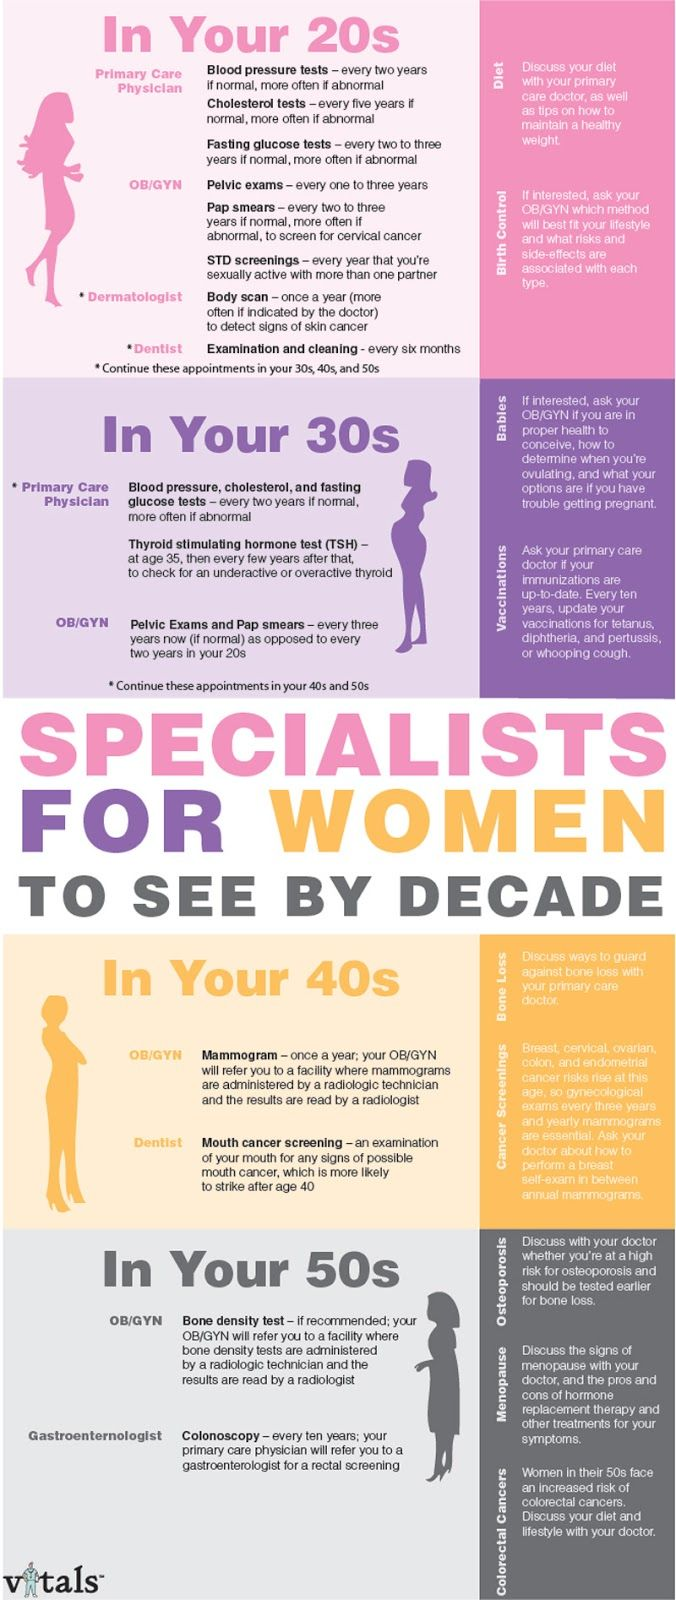 Greetings Divas! I came across the following Infograph on the Huffington Post and wanted to share it with you all in honor of National Wo...